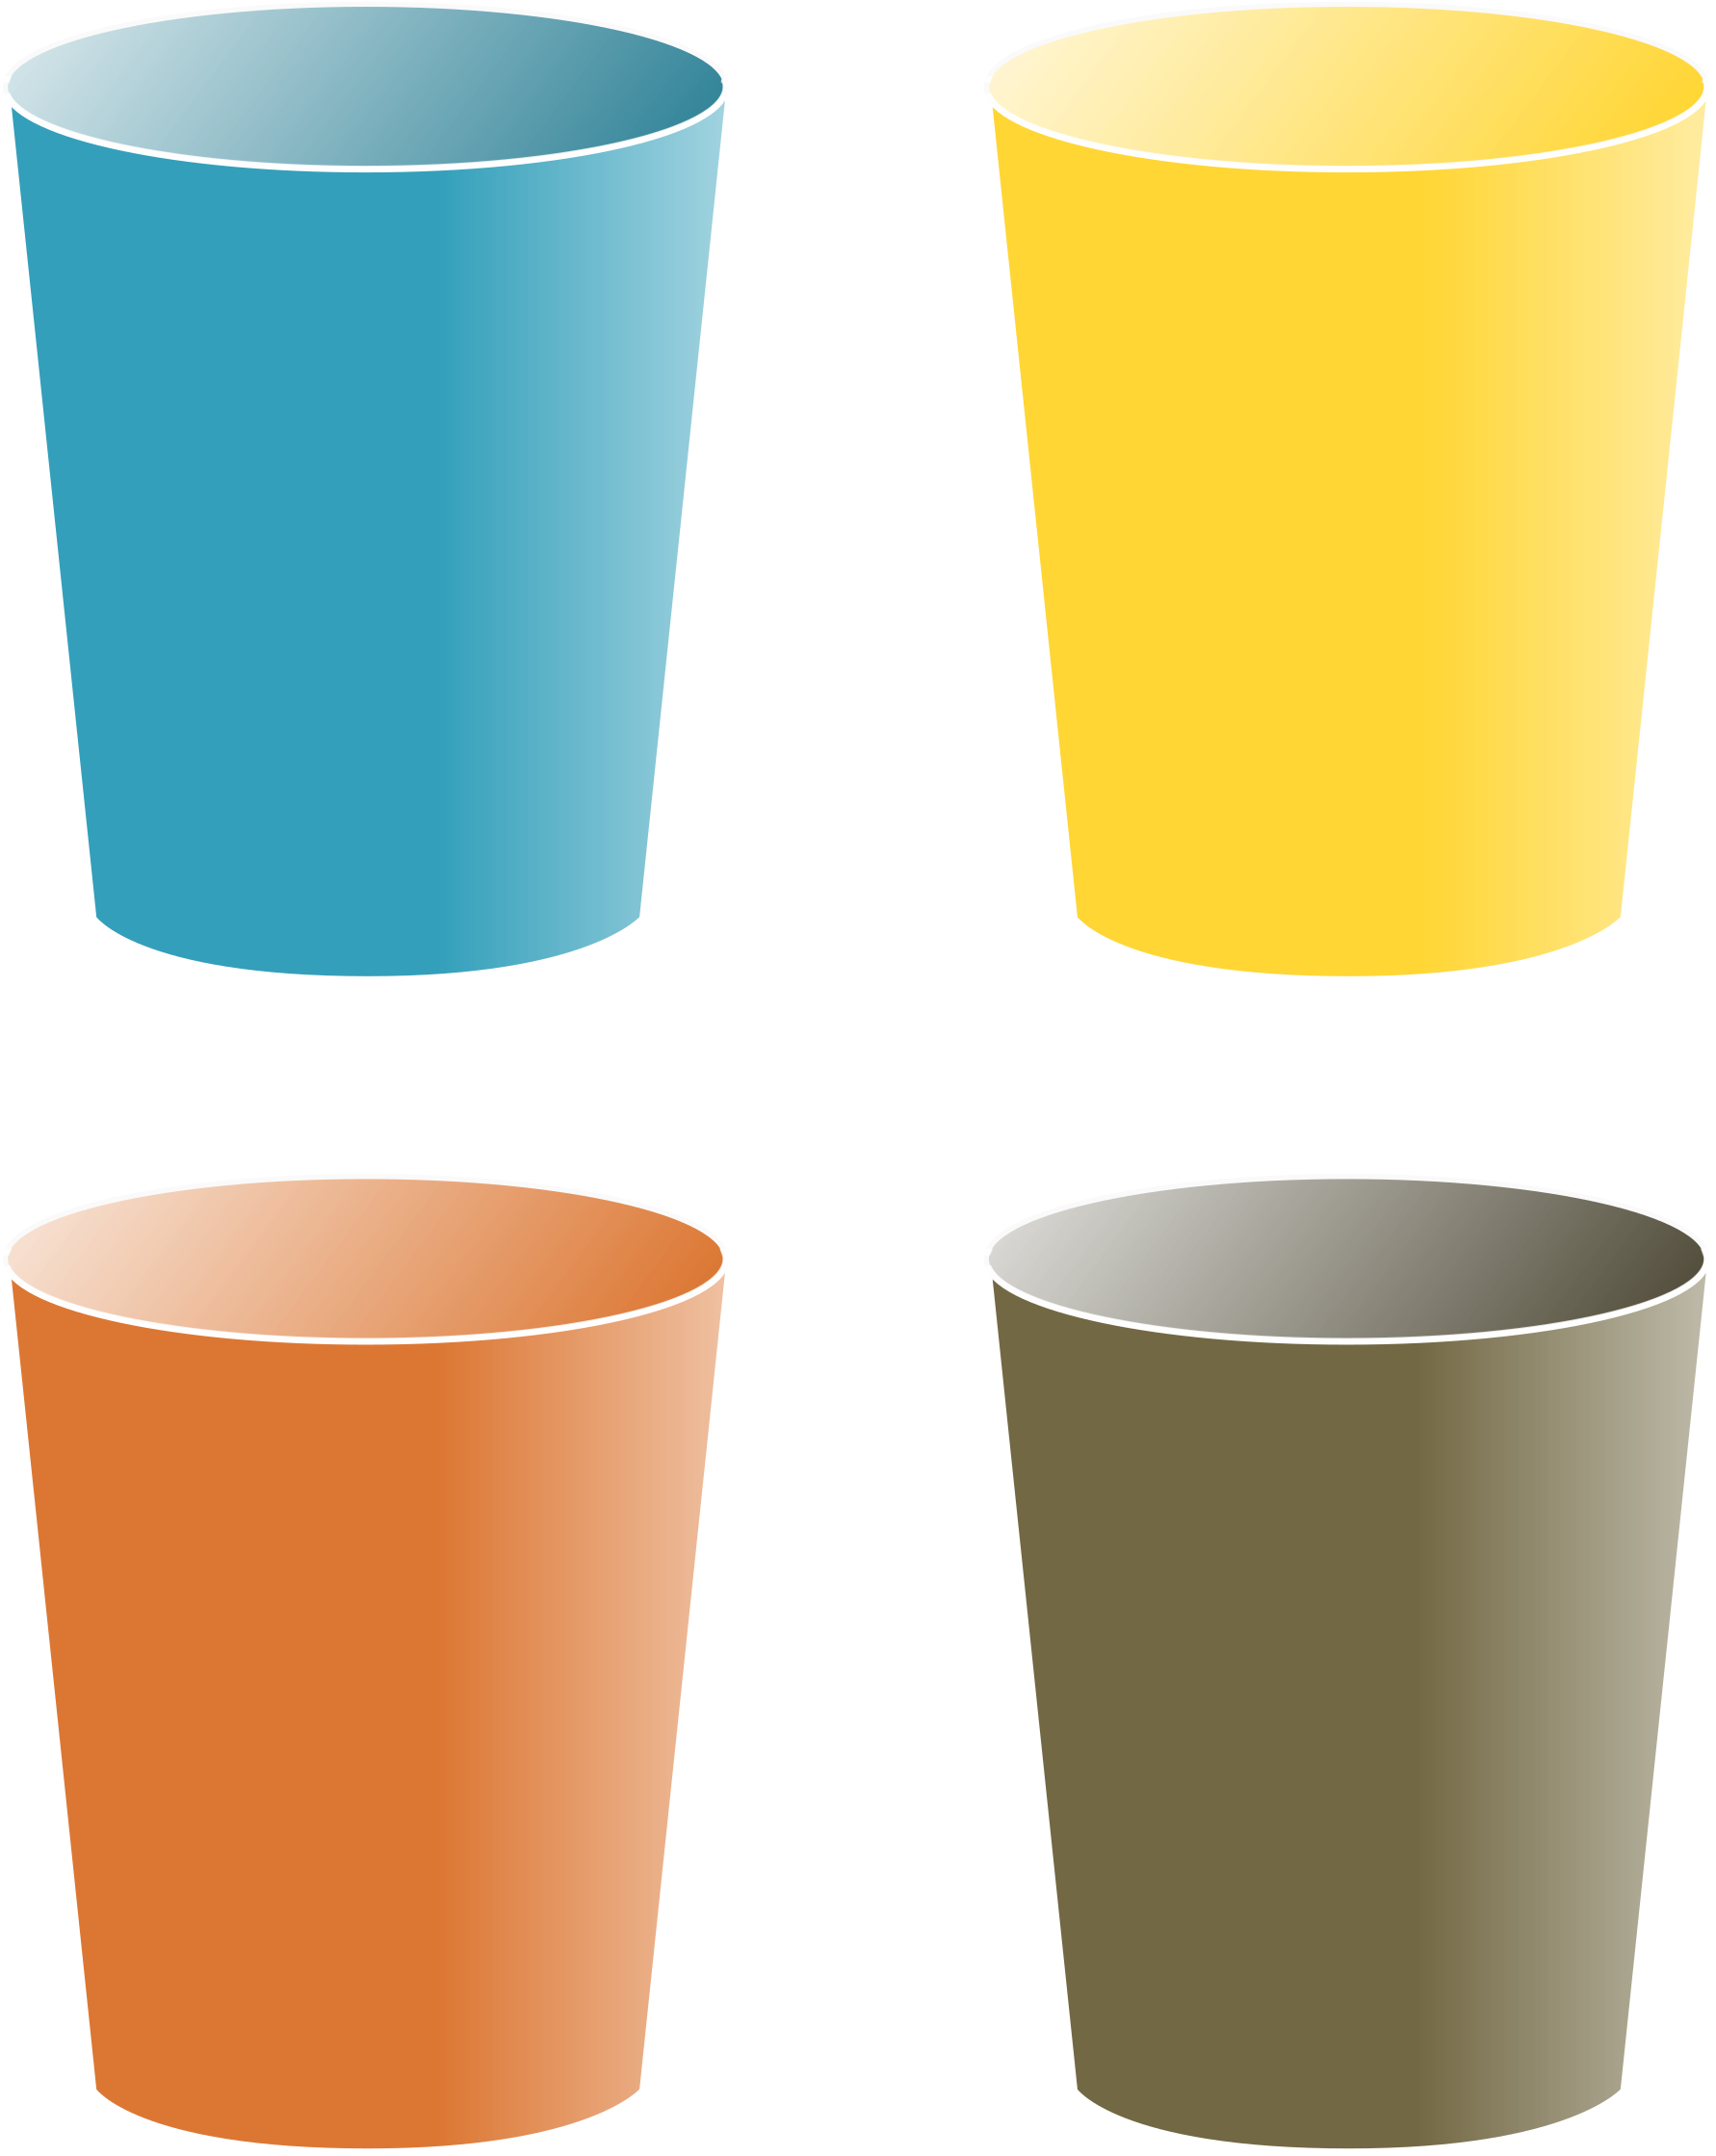 Cups Clipart - Cups Clipart (1909x2400)